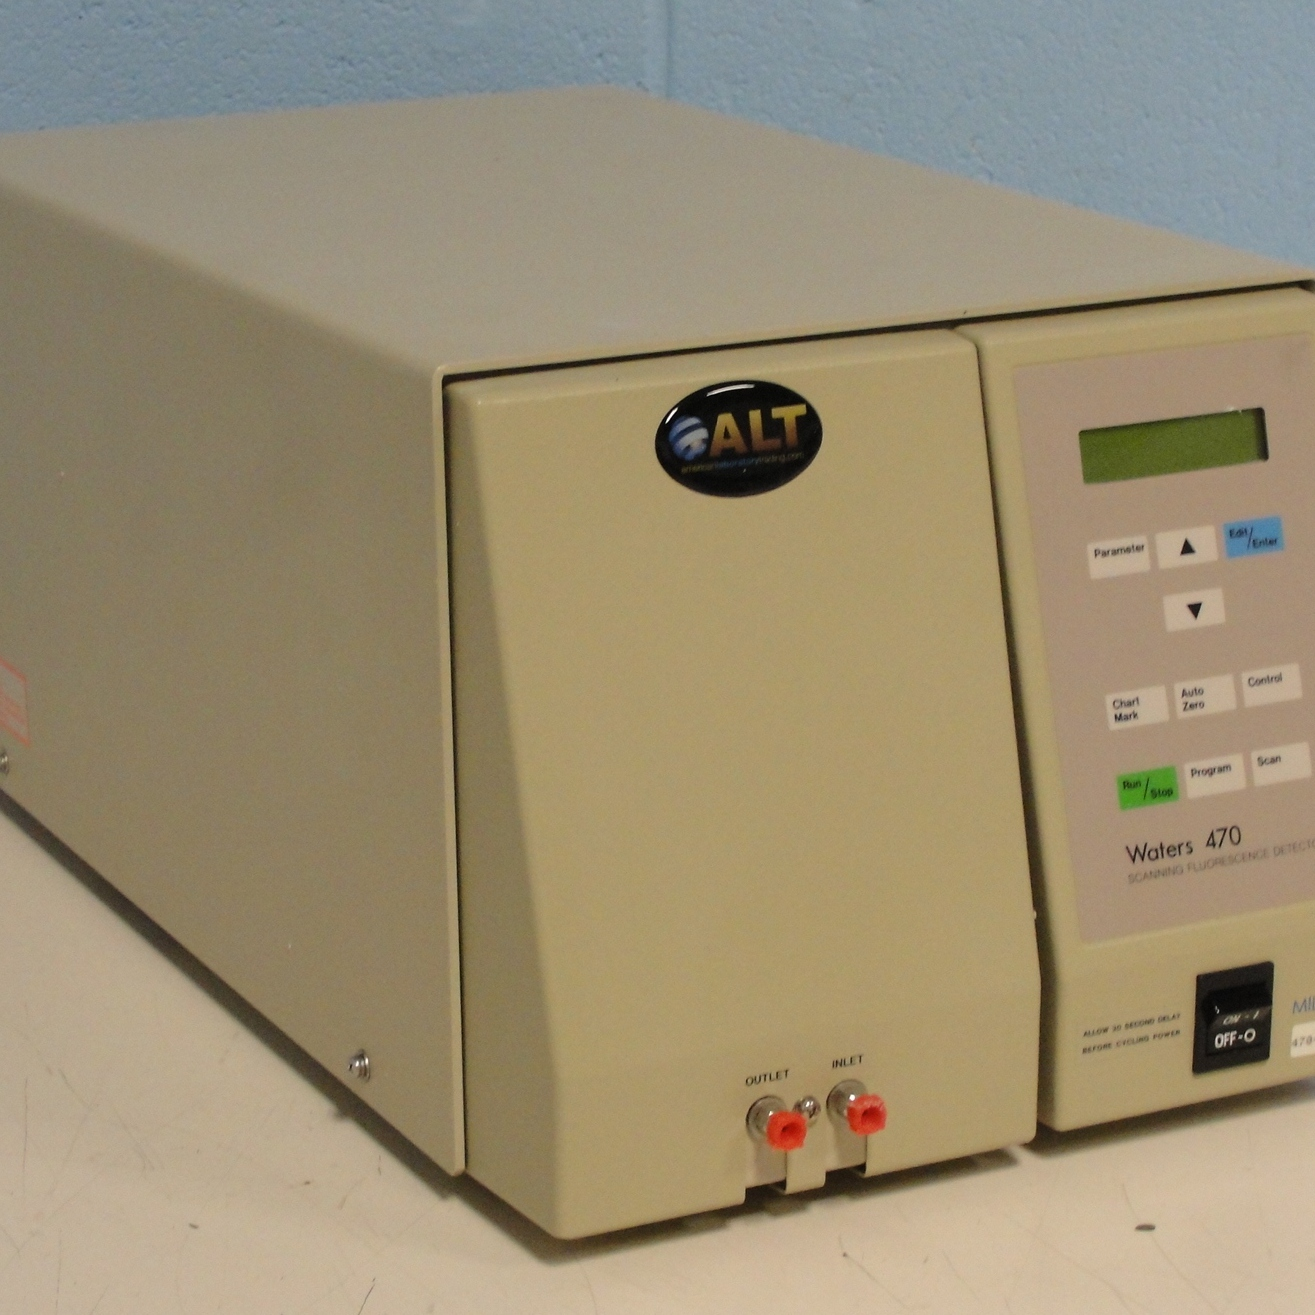 Waters 470 Scanning Fluorescence Detector Image